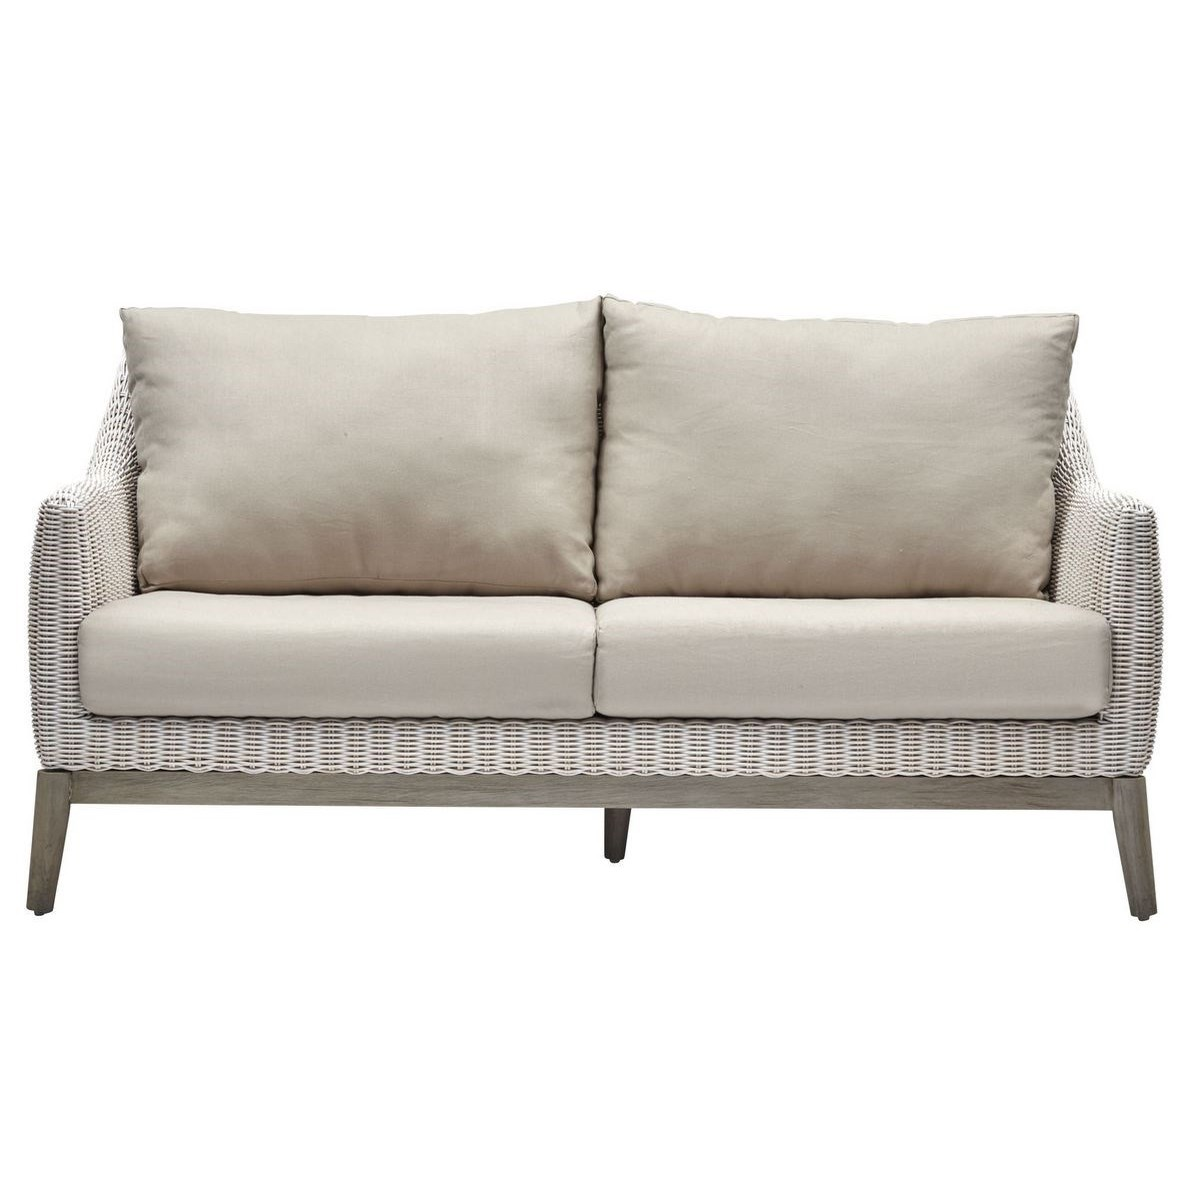 Metropolitan Settee White Weave, Gray Frame Cushion Color - Linen SOLD AS-IS  ~  ALL SALES FINAL